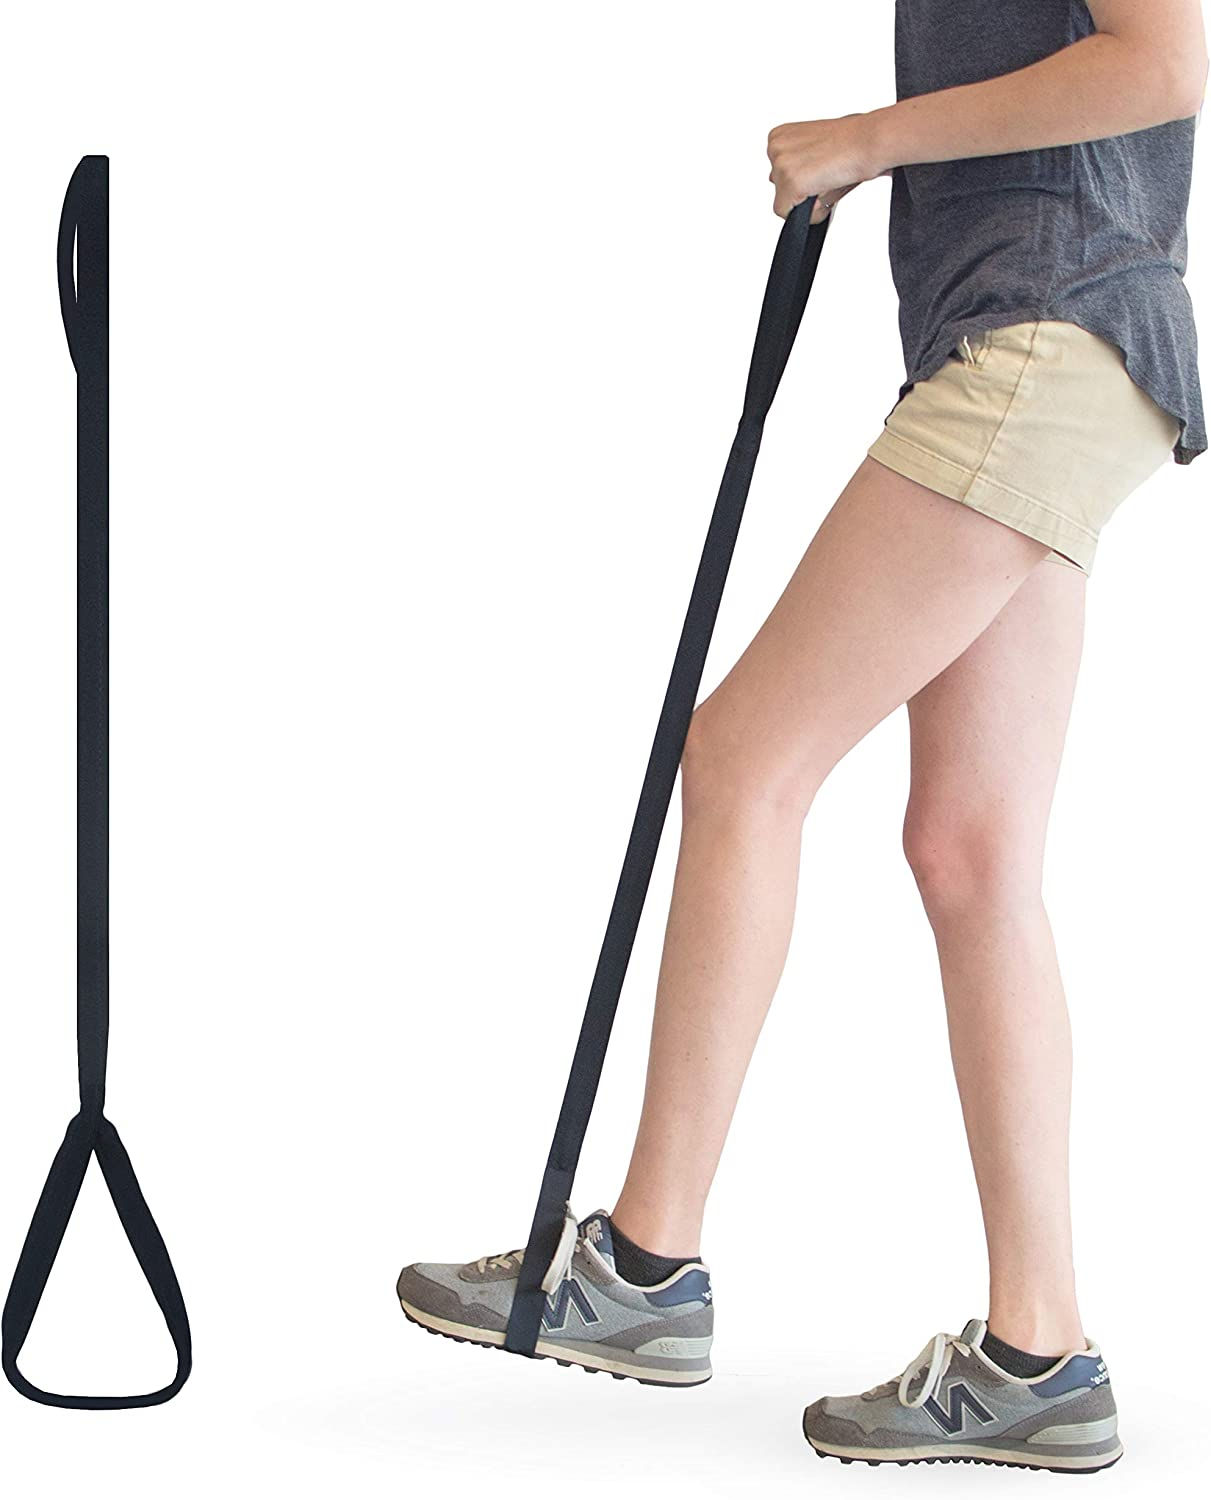 RMS 35 Inch Long Leg Lifter - Durable & Rigid Hand Strap & Foot Loop - Ideal Mobility Tool for Wheelchair, Hip & Knee Replacement Surgery (35 Inch Long): Health & Personal Care